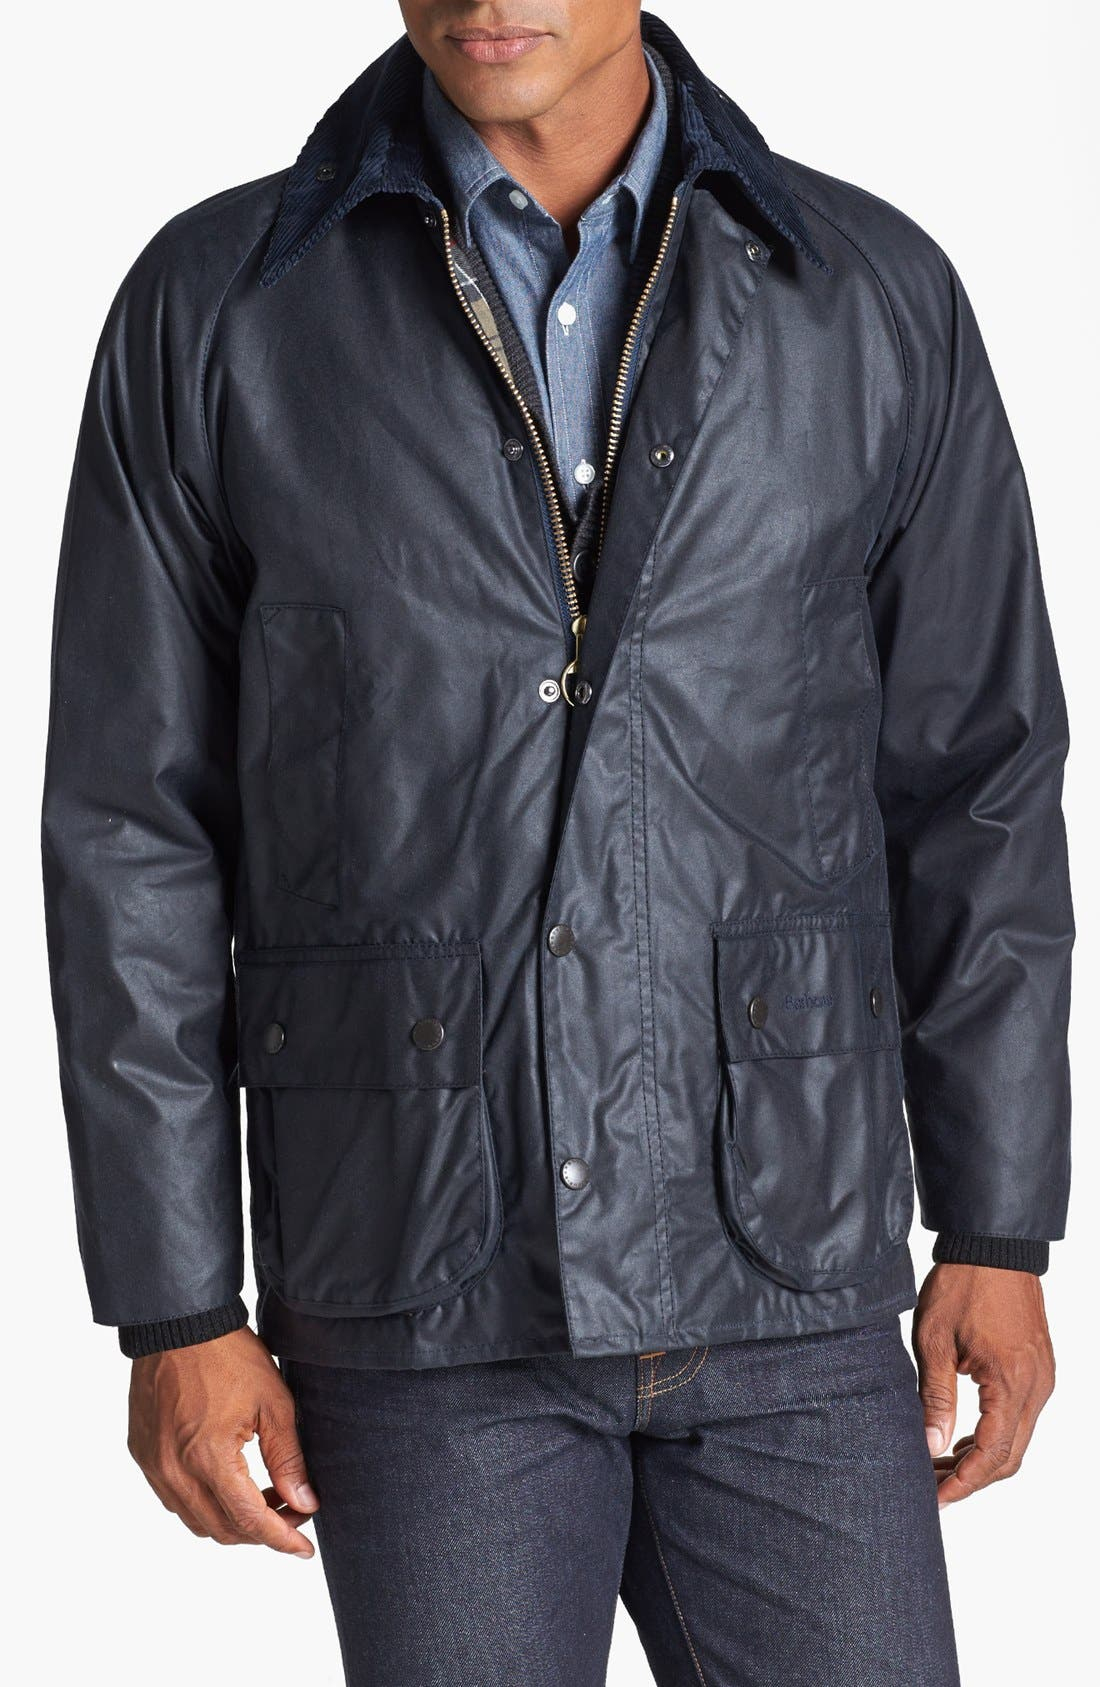 Main Image - Barbour 'Bedale' Regular Fit Waxed Cotton Jacket